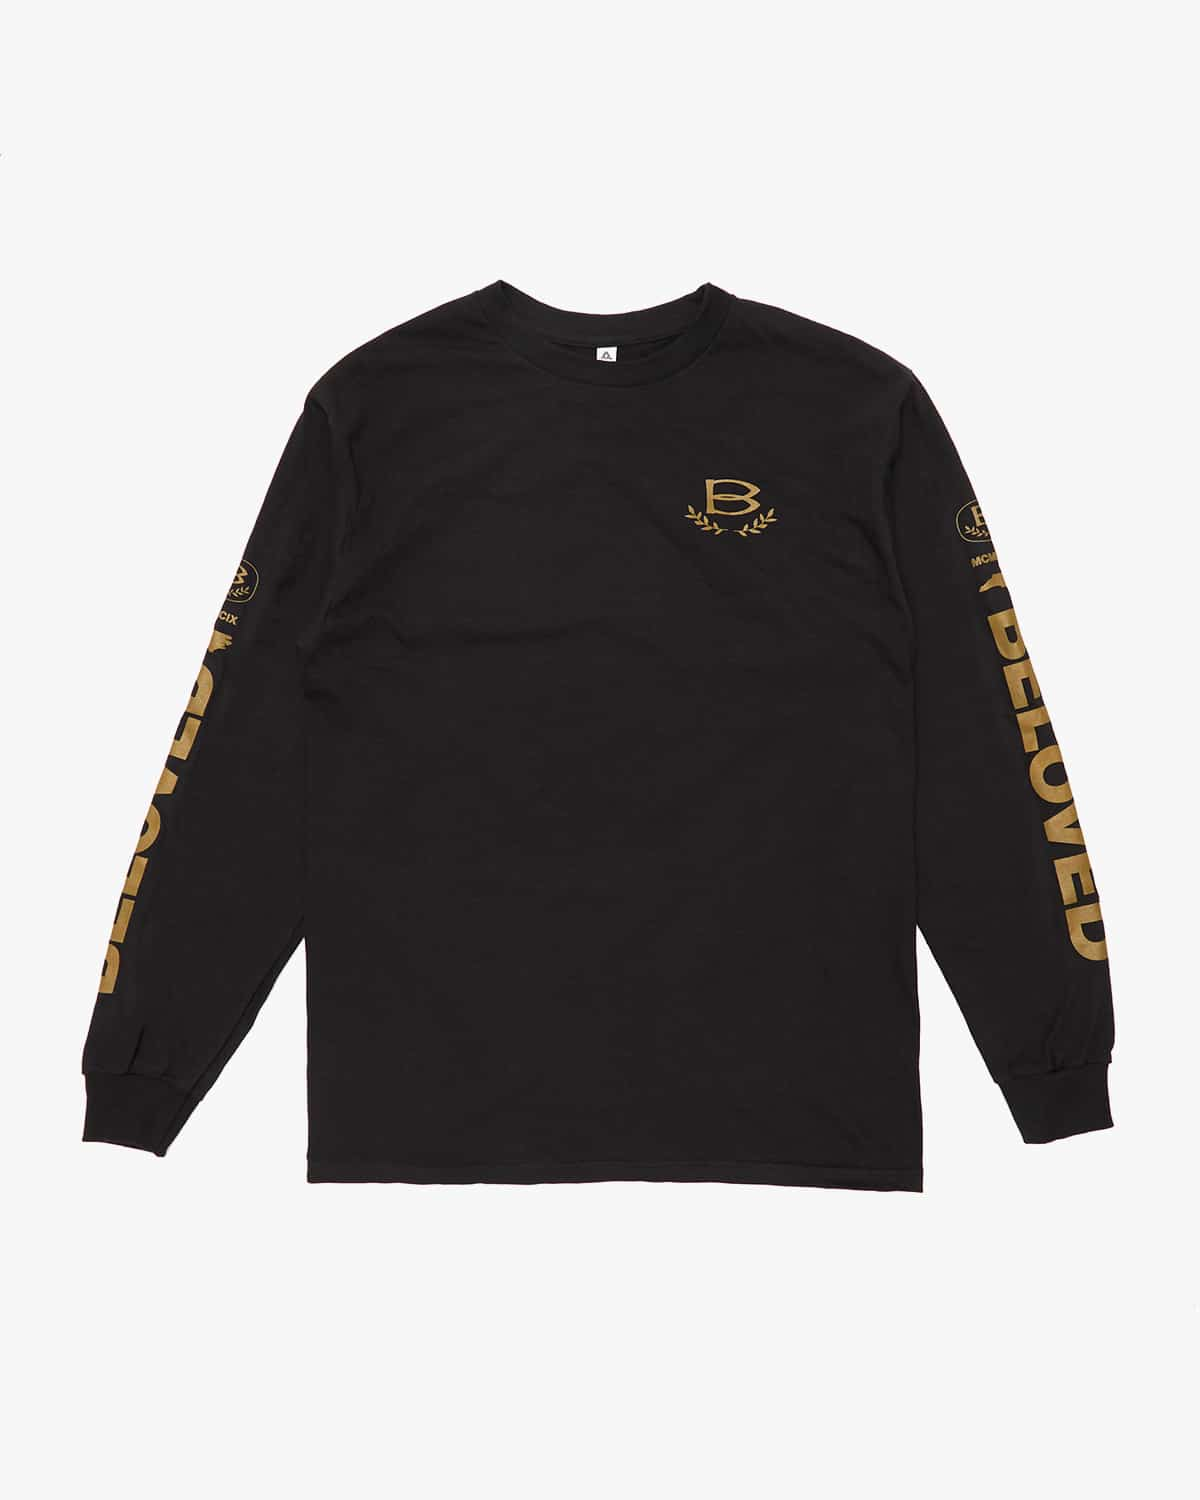 'Vision' Long Sleeve Tee - Black